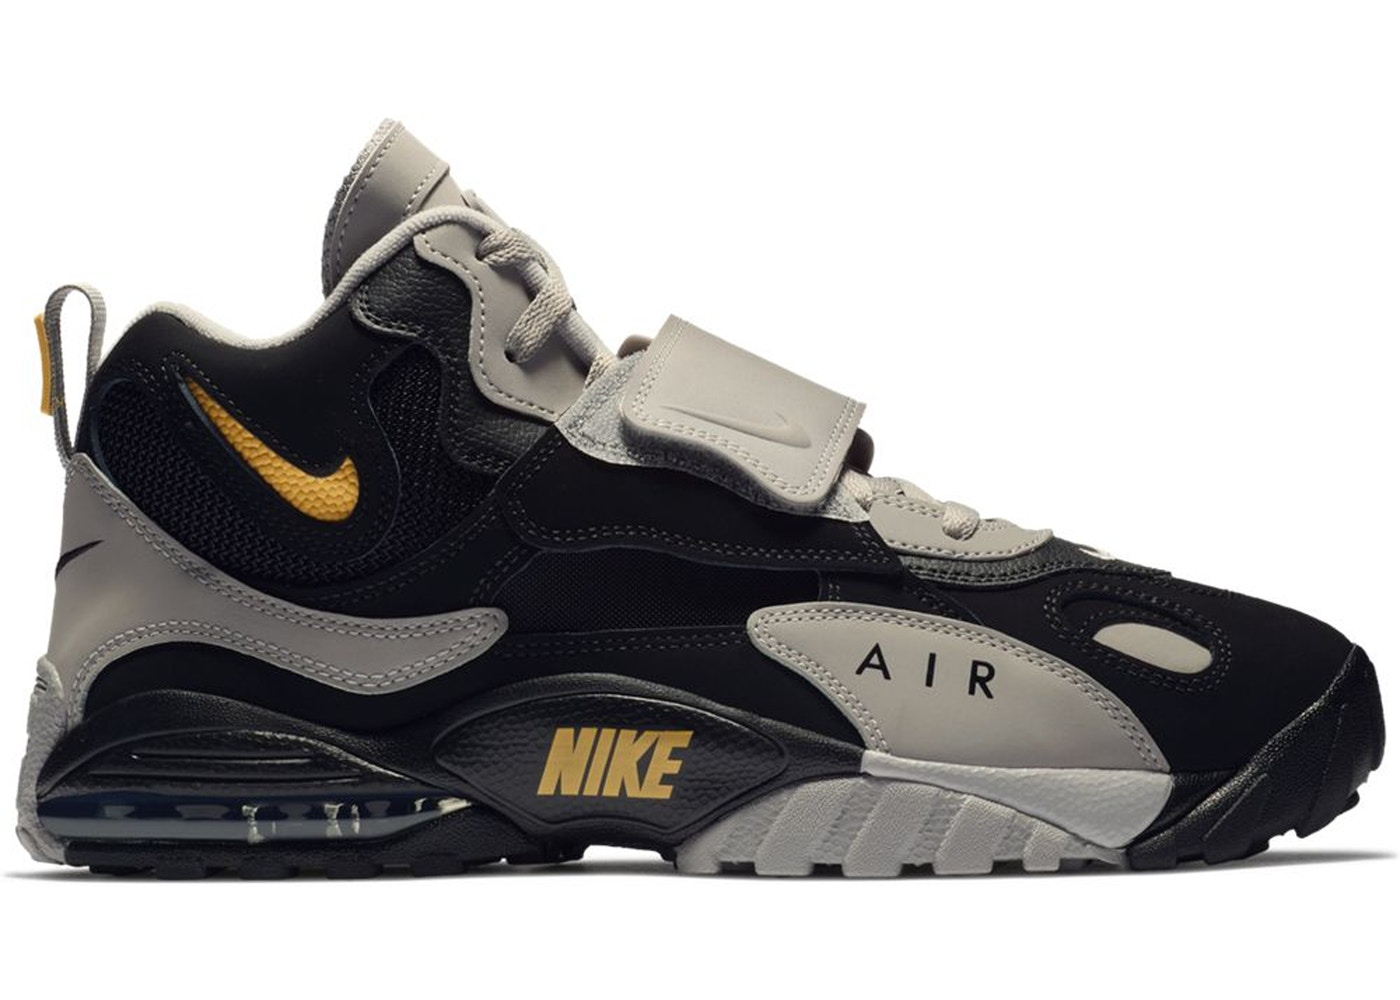 a6d9a0d4cf Air Max Speed Turf Black Grey Yellow - AV7895-001